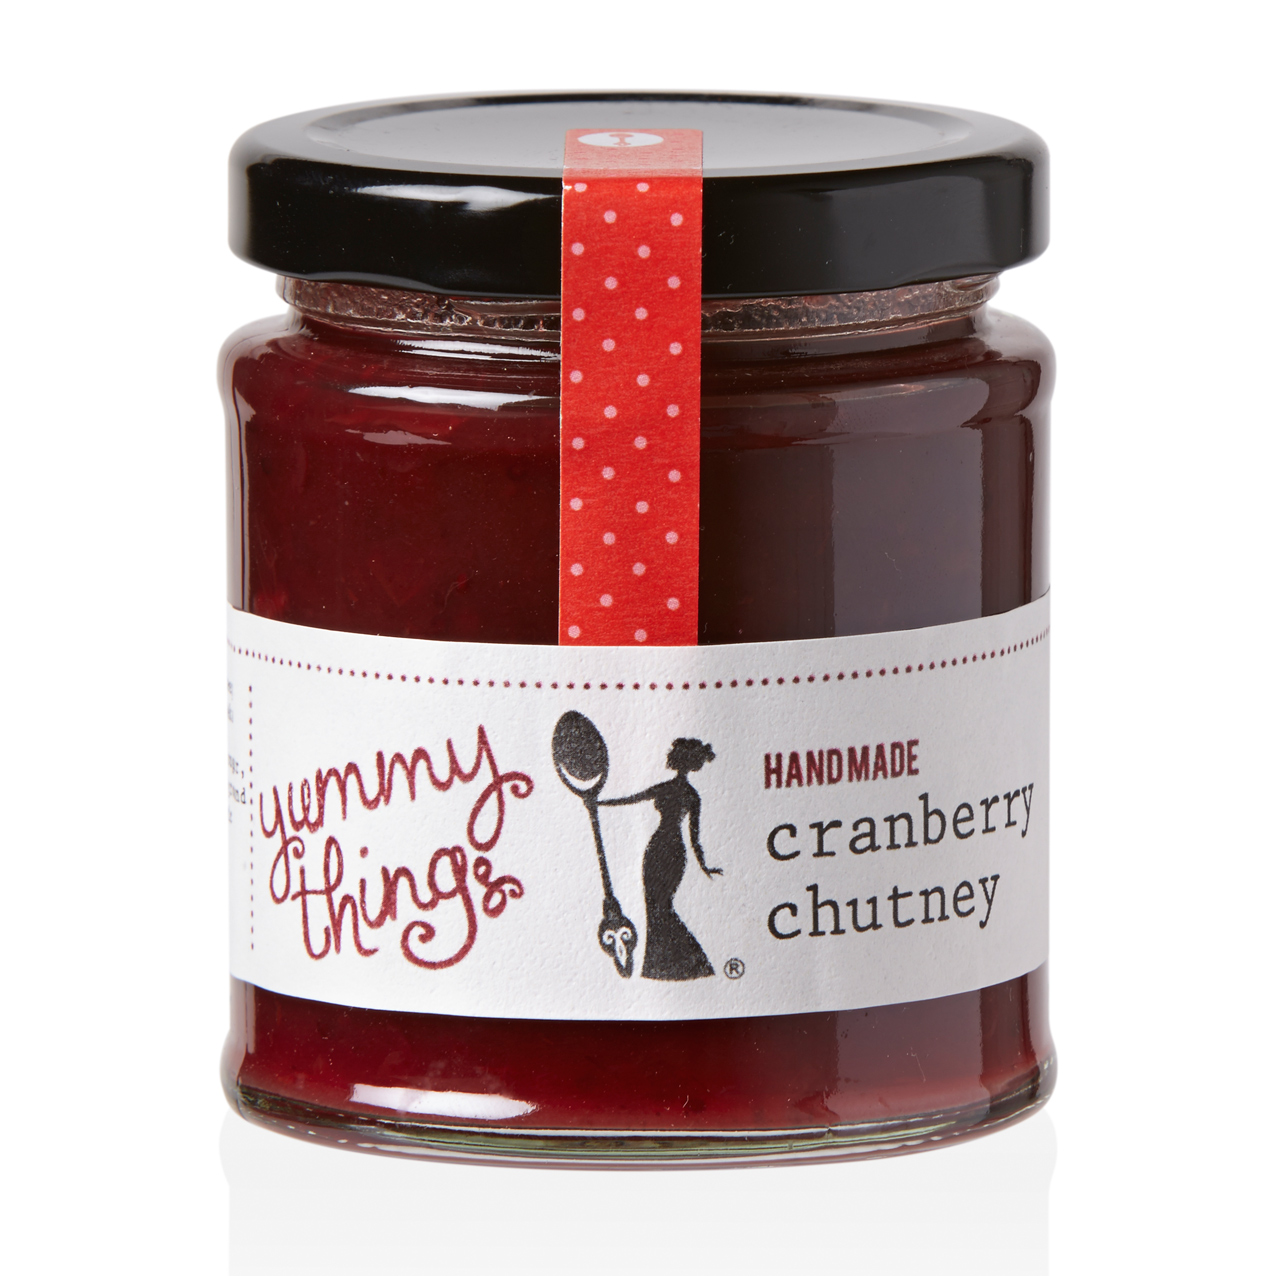 Yummy Things' delicious, handmade cranberry chutney - Made in Gosforth, Newcastle upon Tyne - The perfect foodie gift!